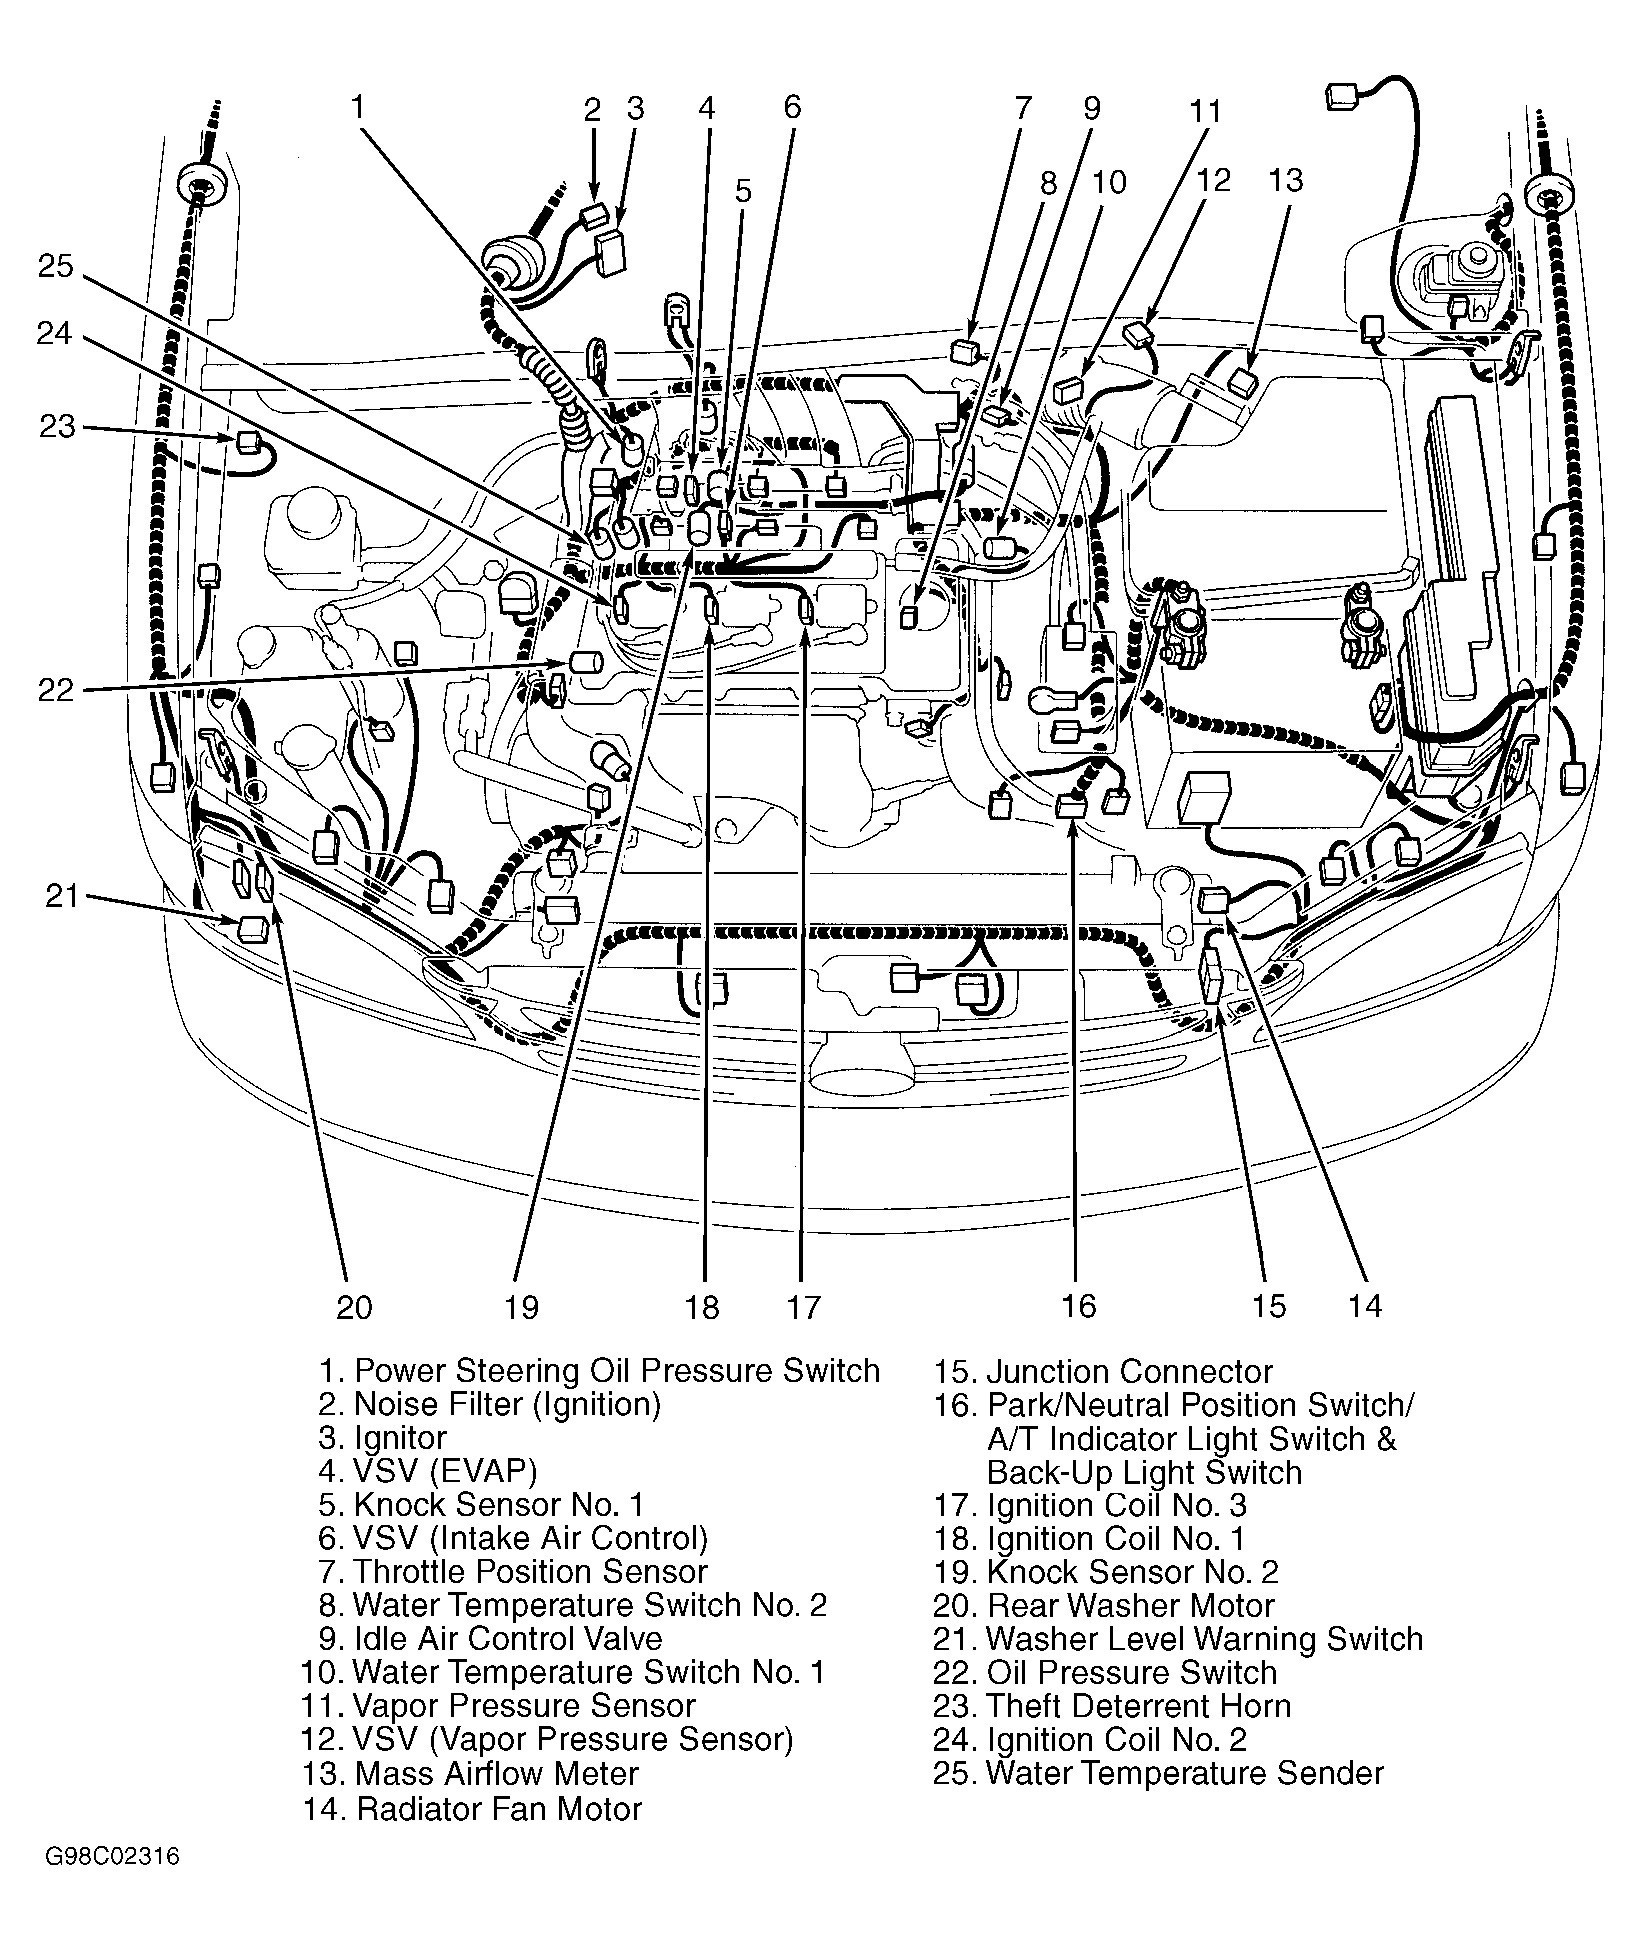 Cooling fan wiring diagram moreover 2006 toyota camry engine diagram rh savvigroup co